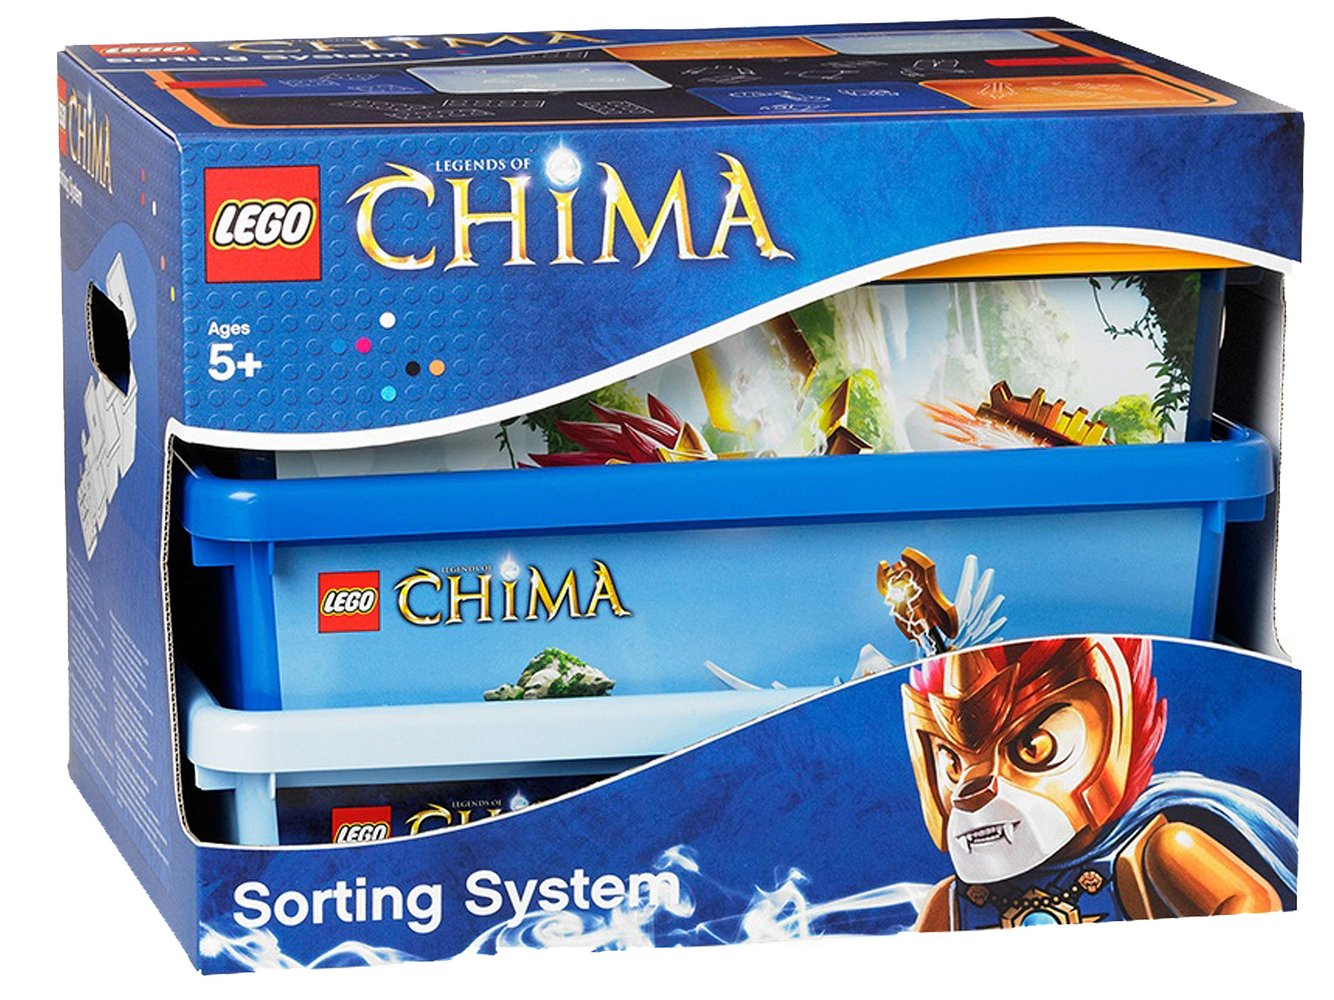 Legends of Chima Sorting System